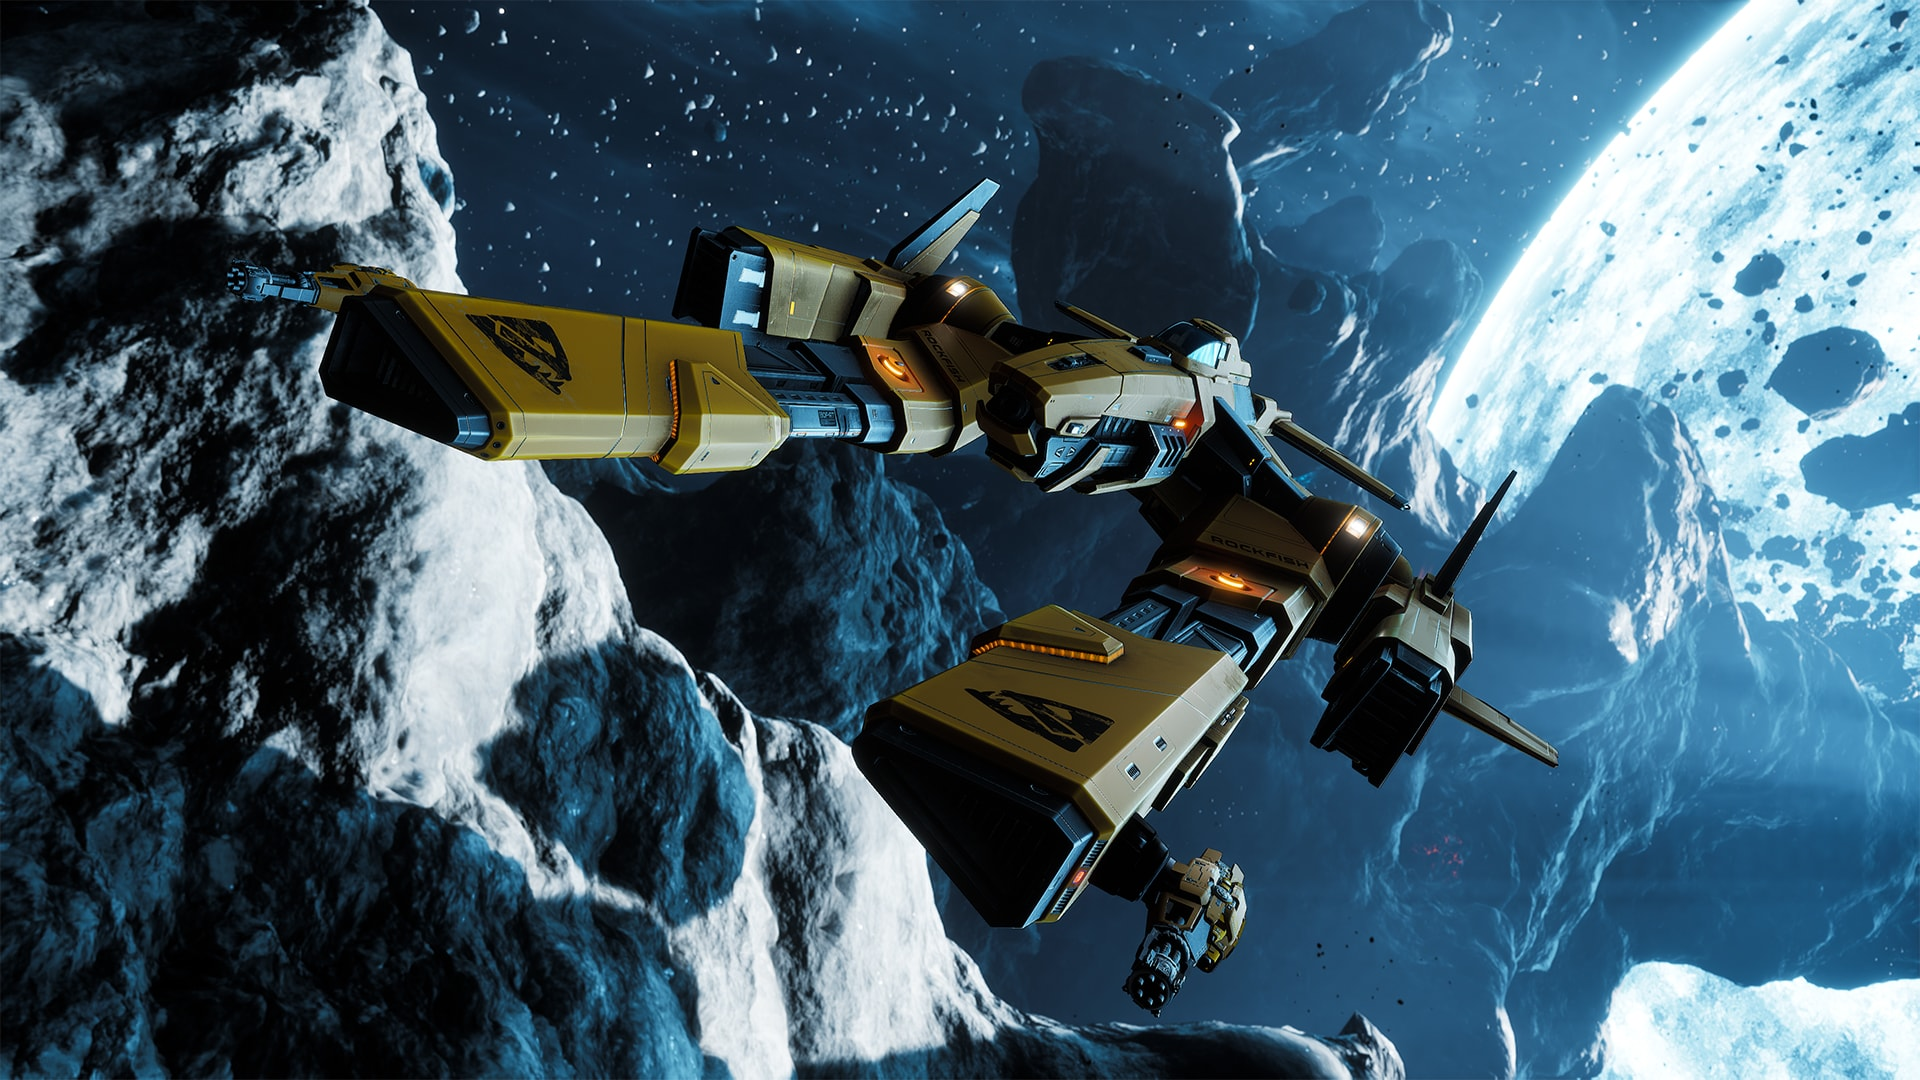 Everspace 2 ditches roguelike progression for a story